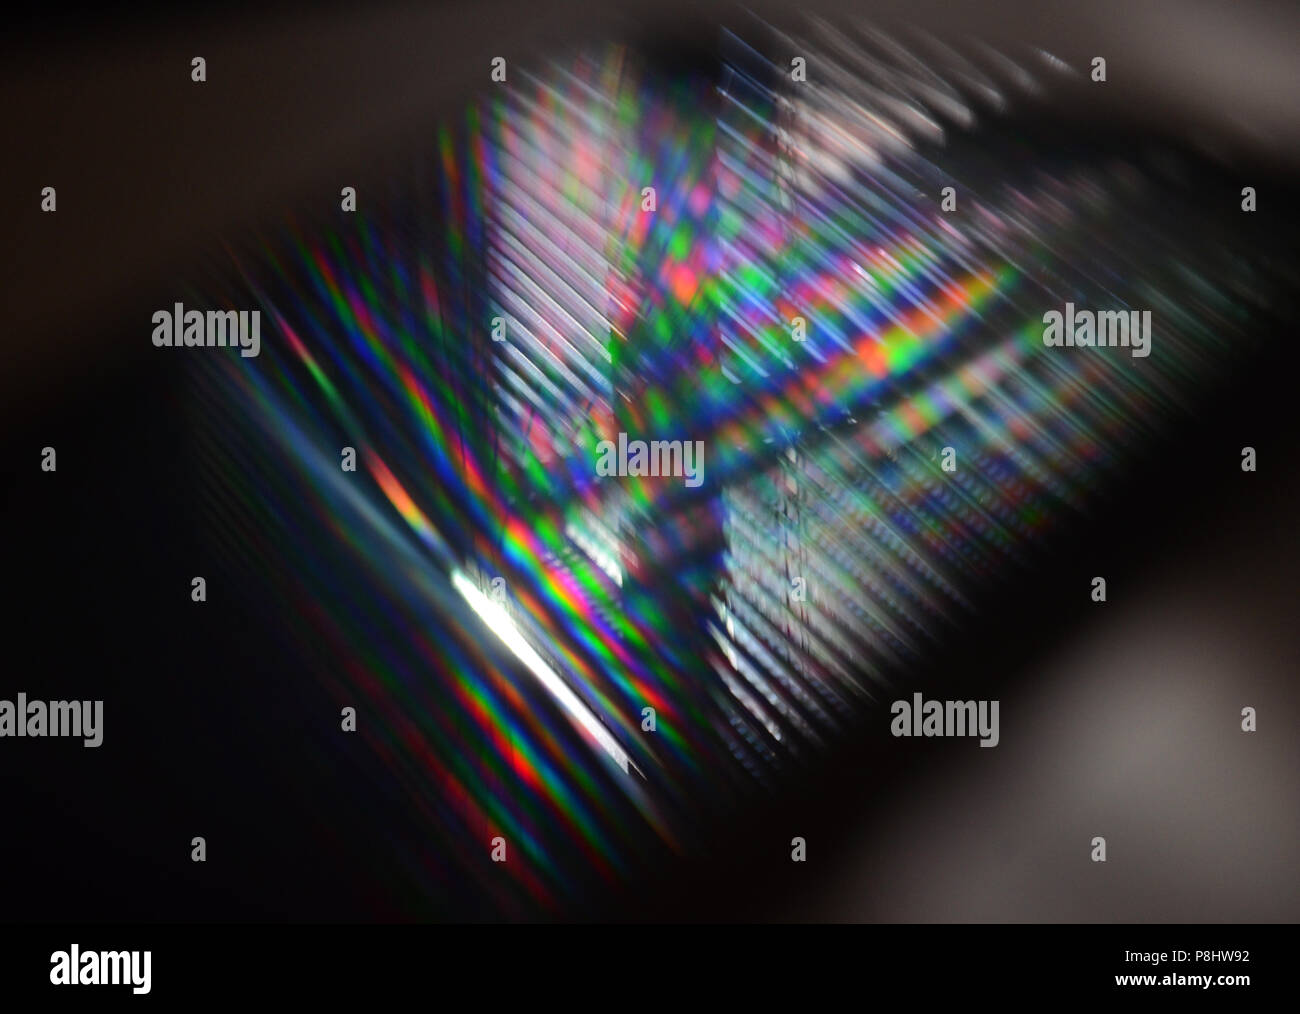 Diffraction from display - Stock Image